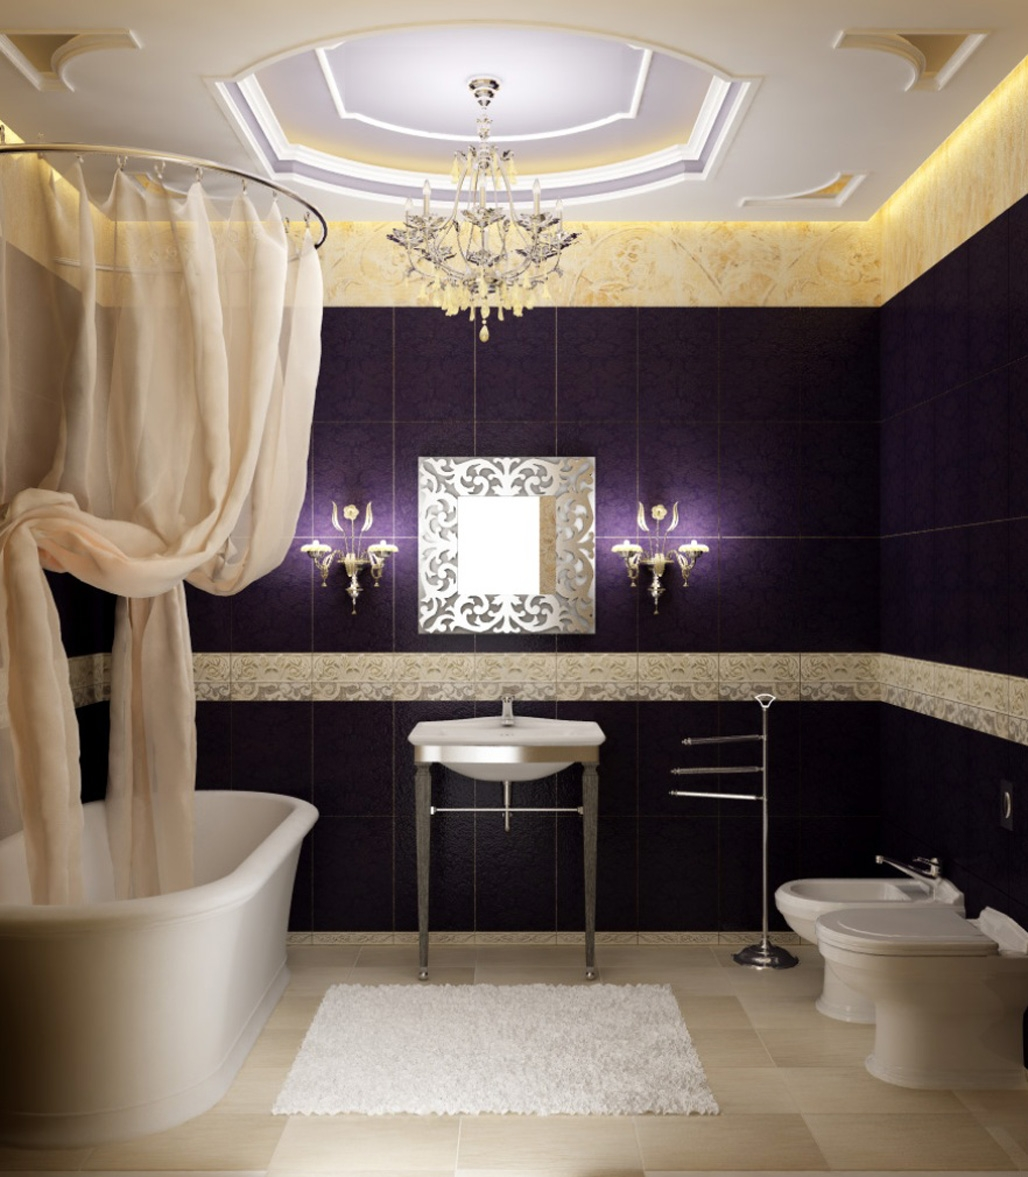 Beautiful Bathroom Ceiling Lights Home Design John With Regard To Chandelier Bathroom Ceiling Lights (Image 14 of 25)